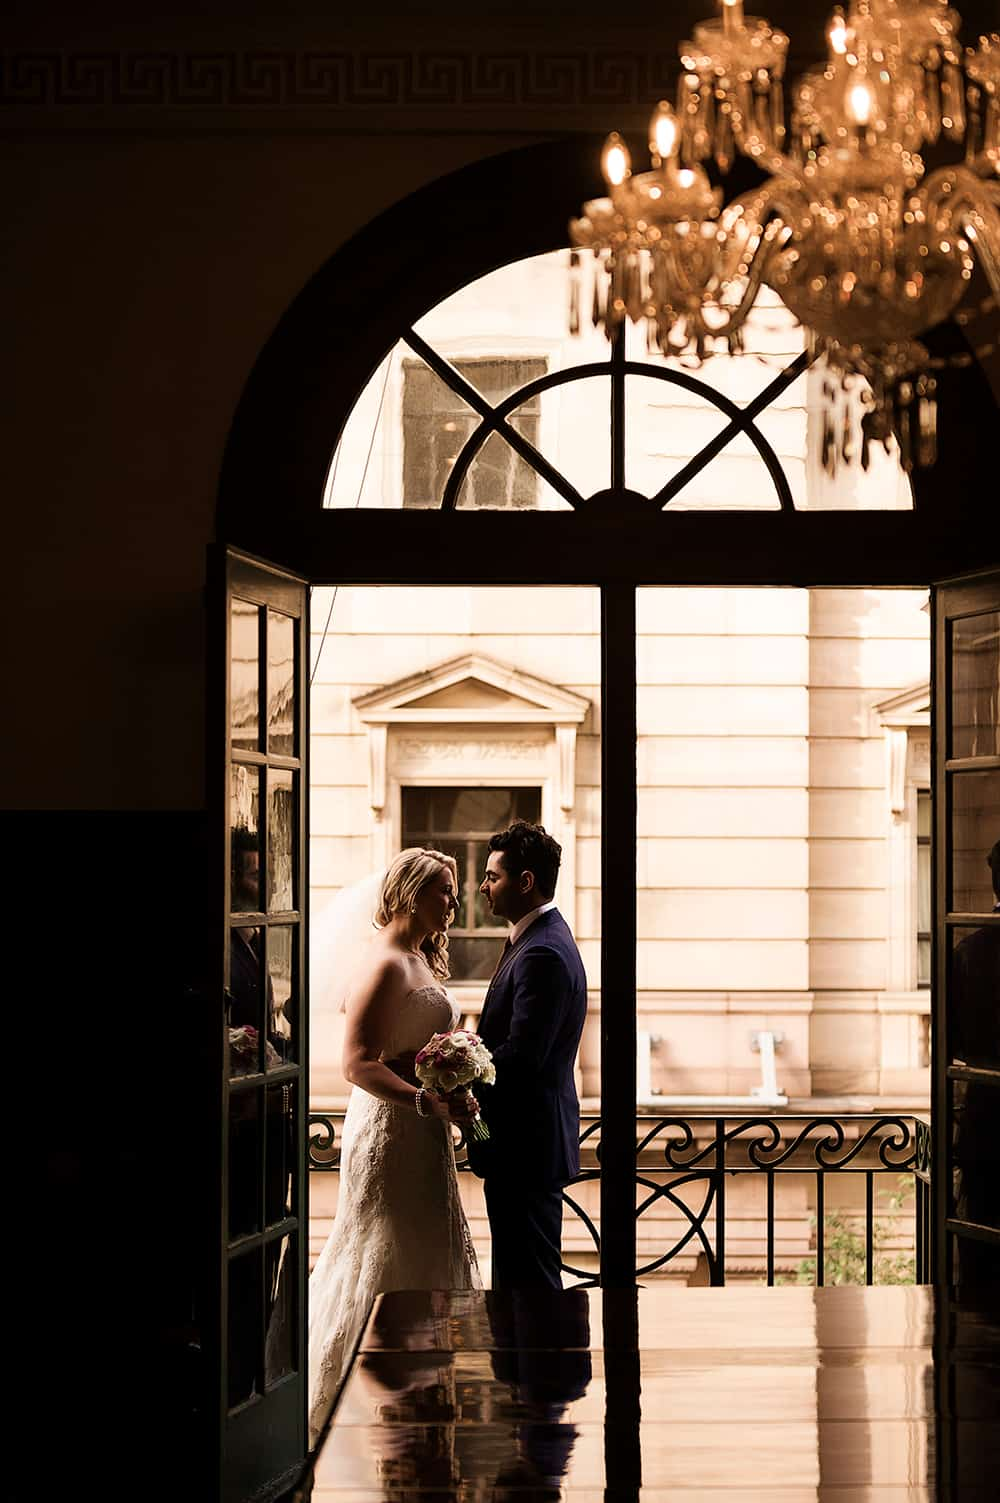 Bride and groom photographed by Christopher Thomas Photography.